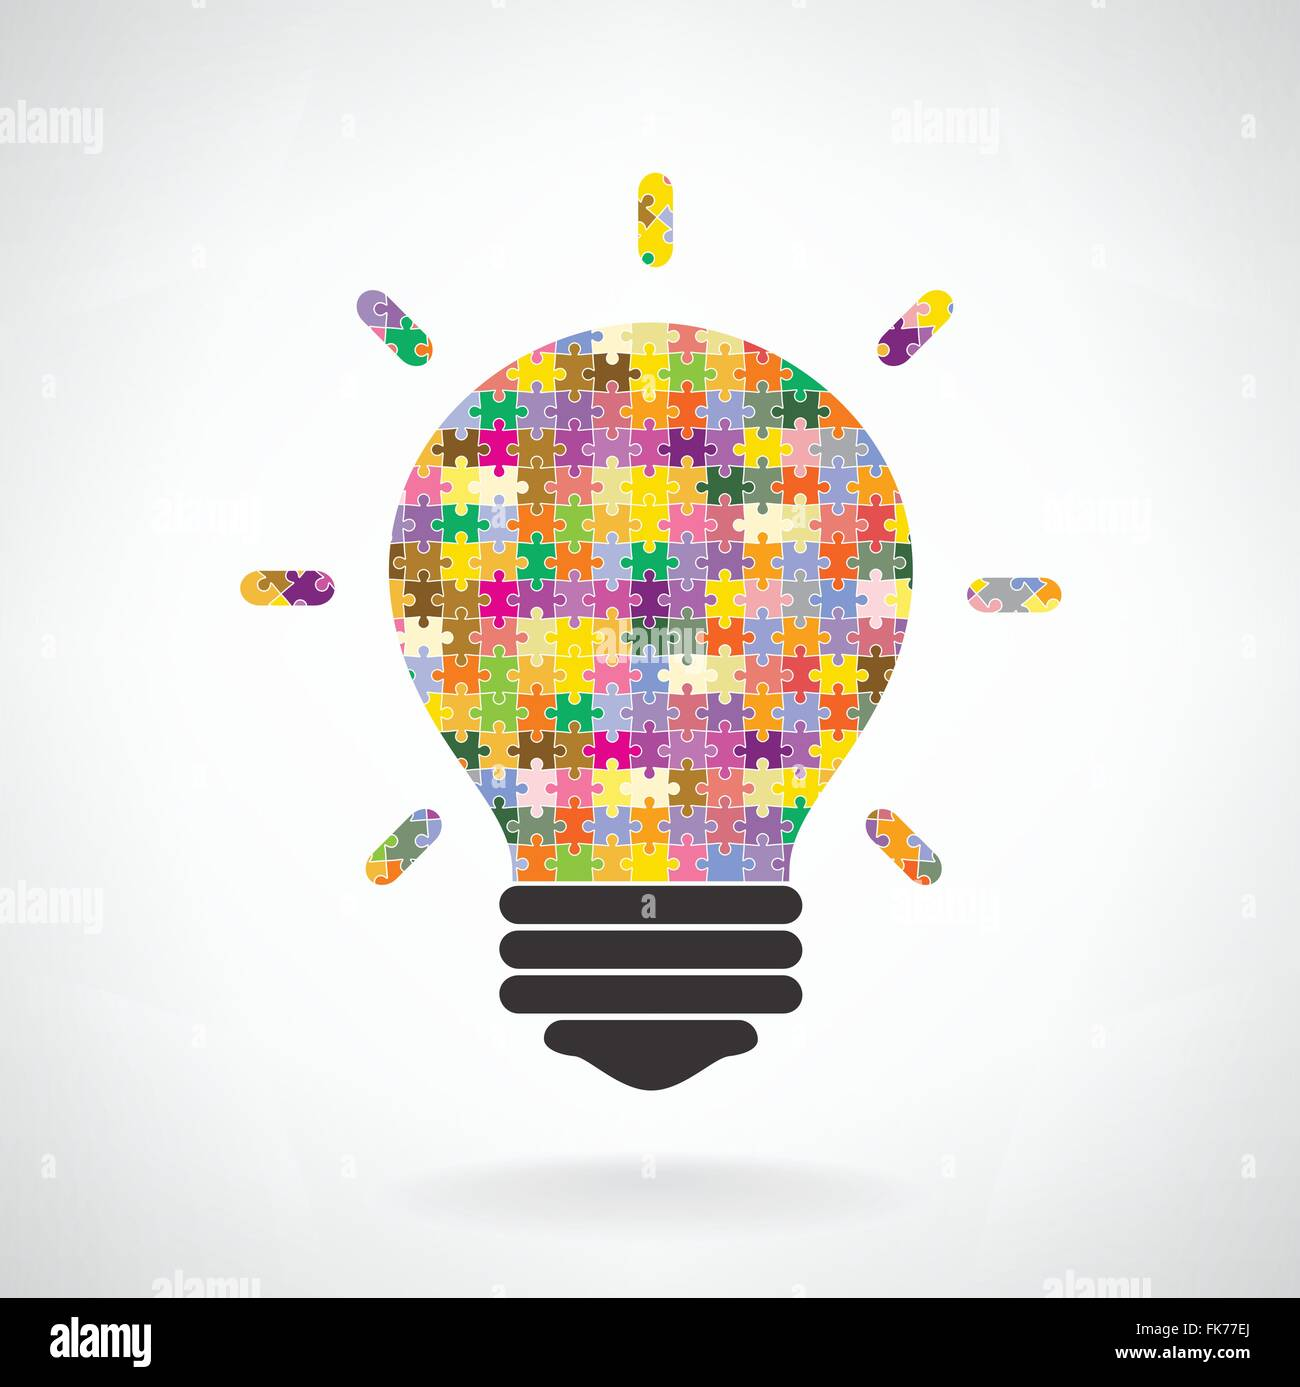 Poster design education - Creative Puzzle Light Bulb Idea Concept Background Design For Poster Flyer Cover Brochure Education